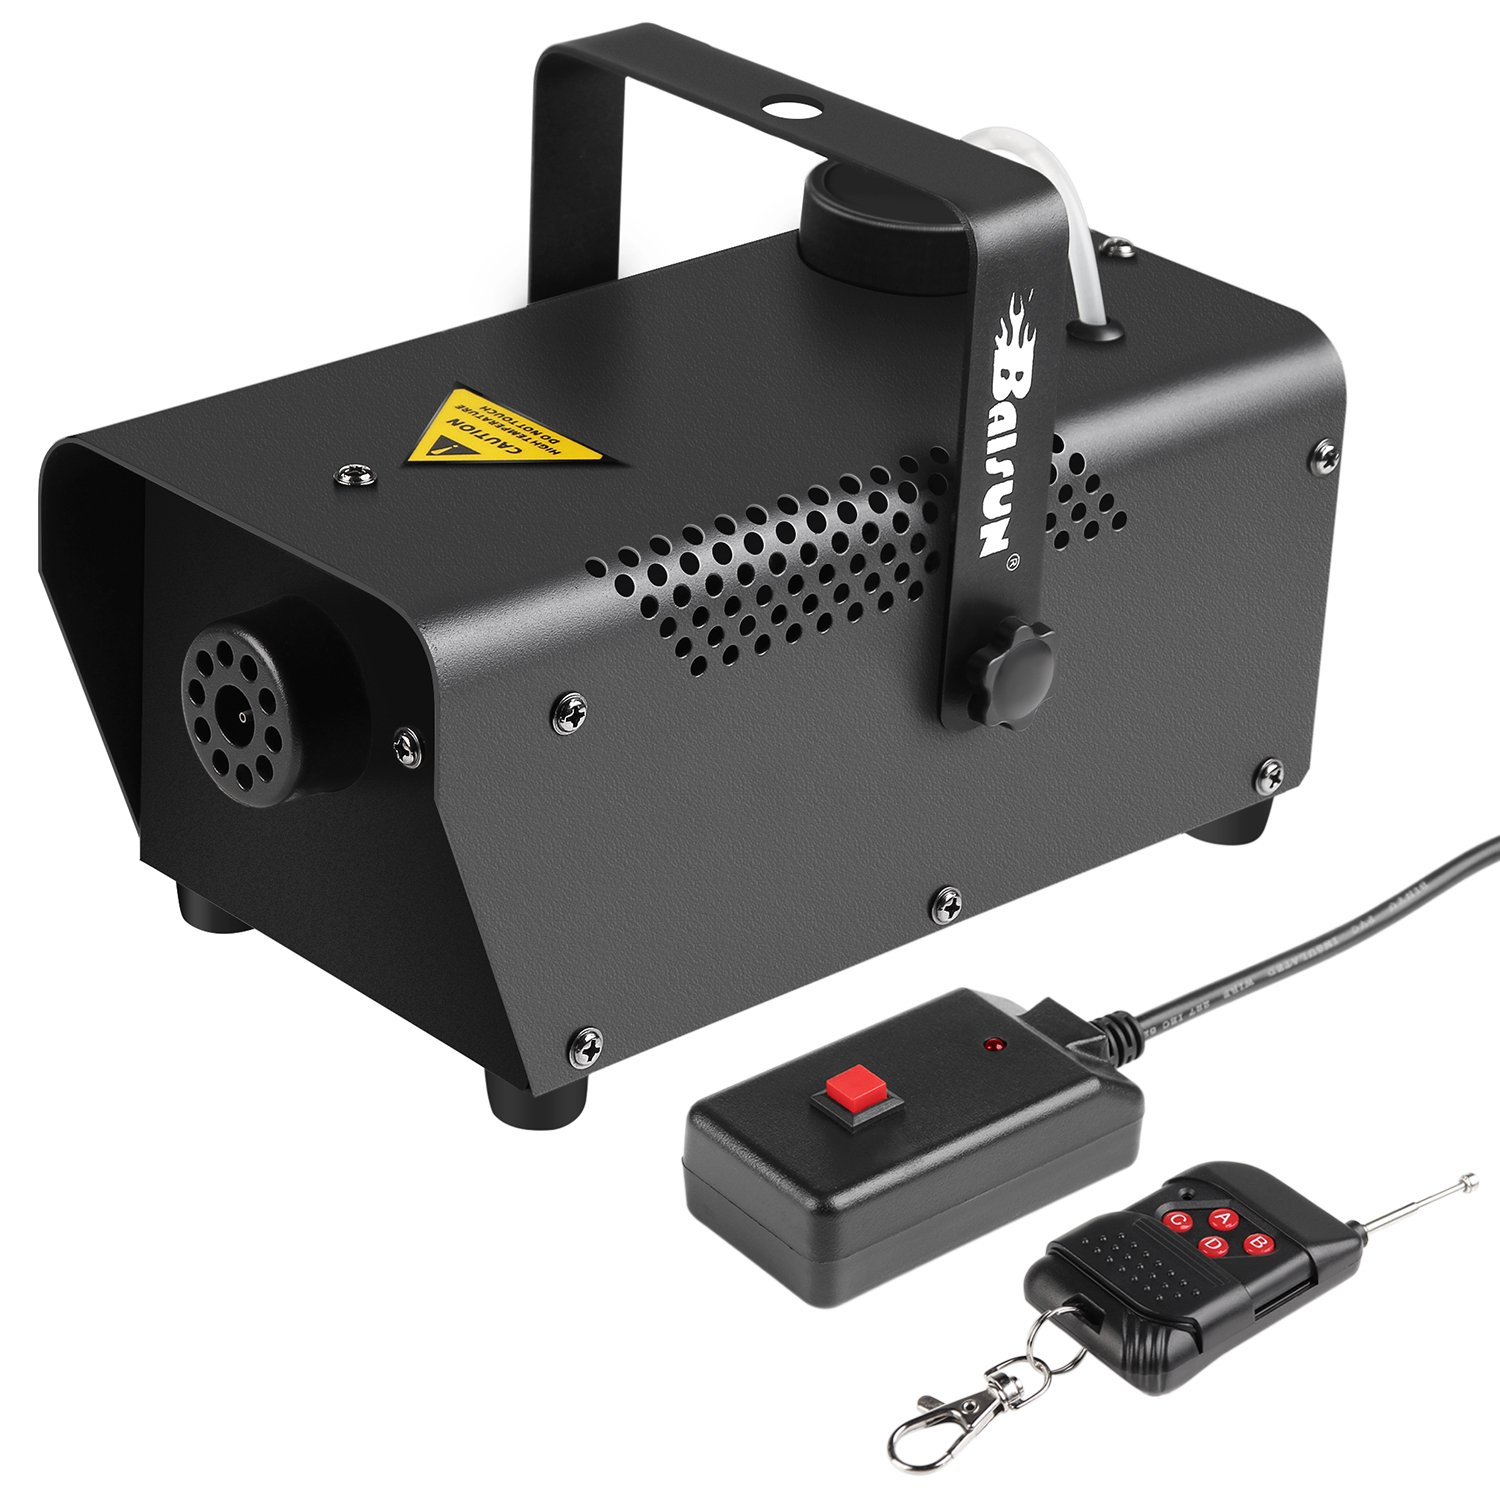 Stage Fog Machine Baisun 400W Wireless Remoter Control Smoke Machine